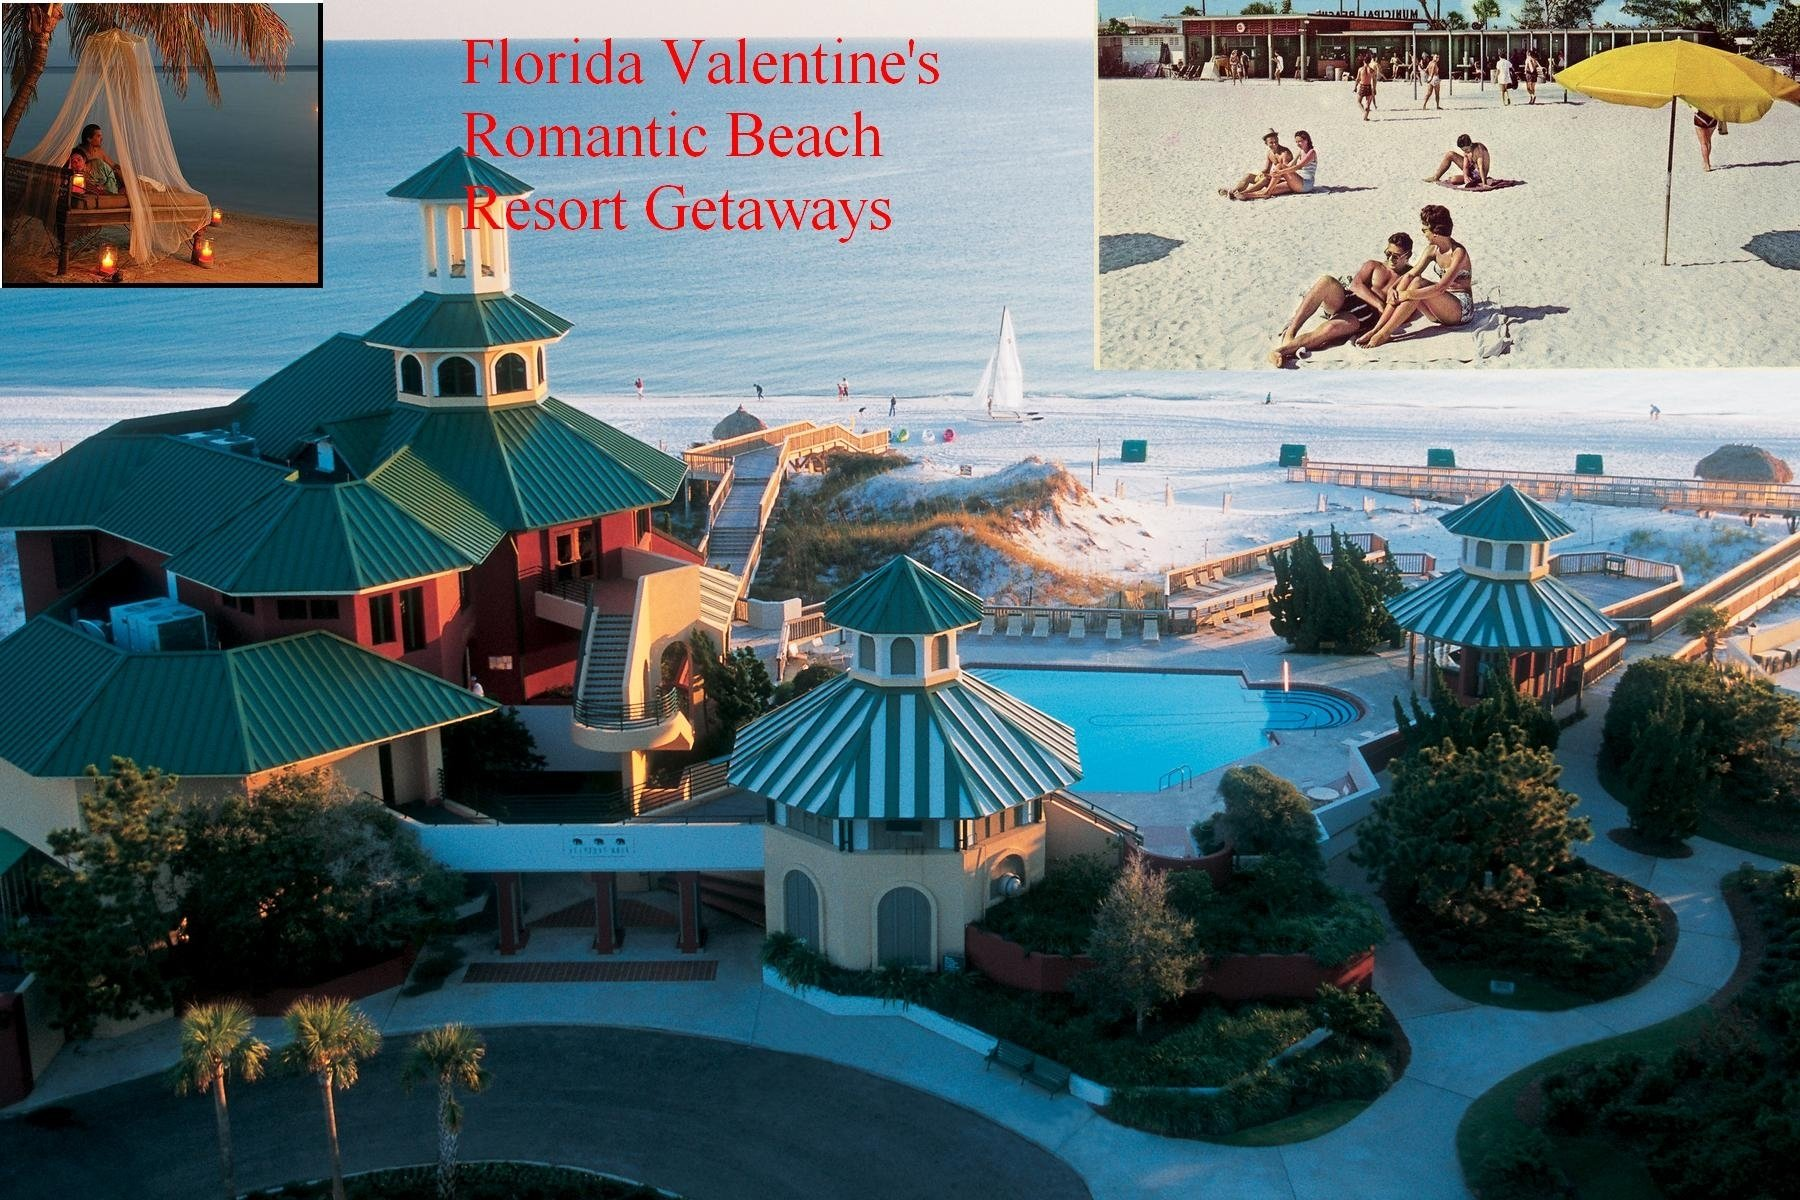 10 Fantastic Weekend Getaway Ideas For Couples romantic places for valentines day startupcorner co 1